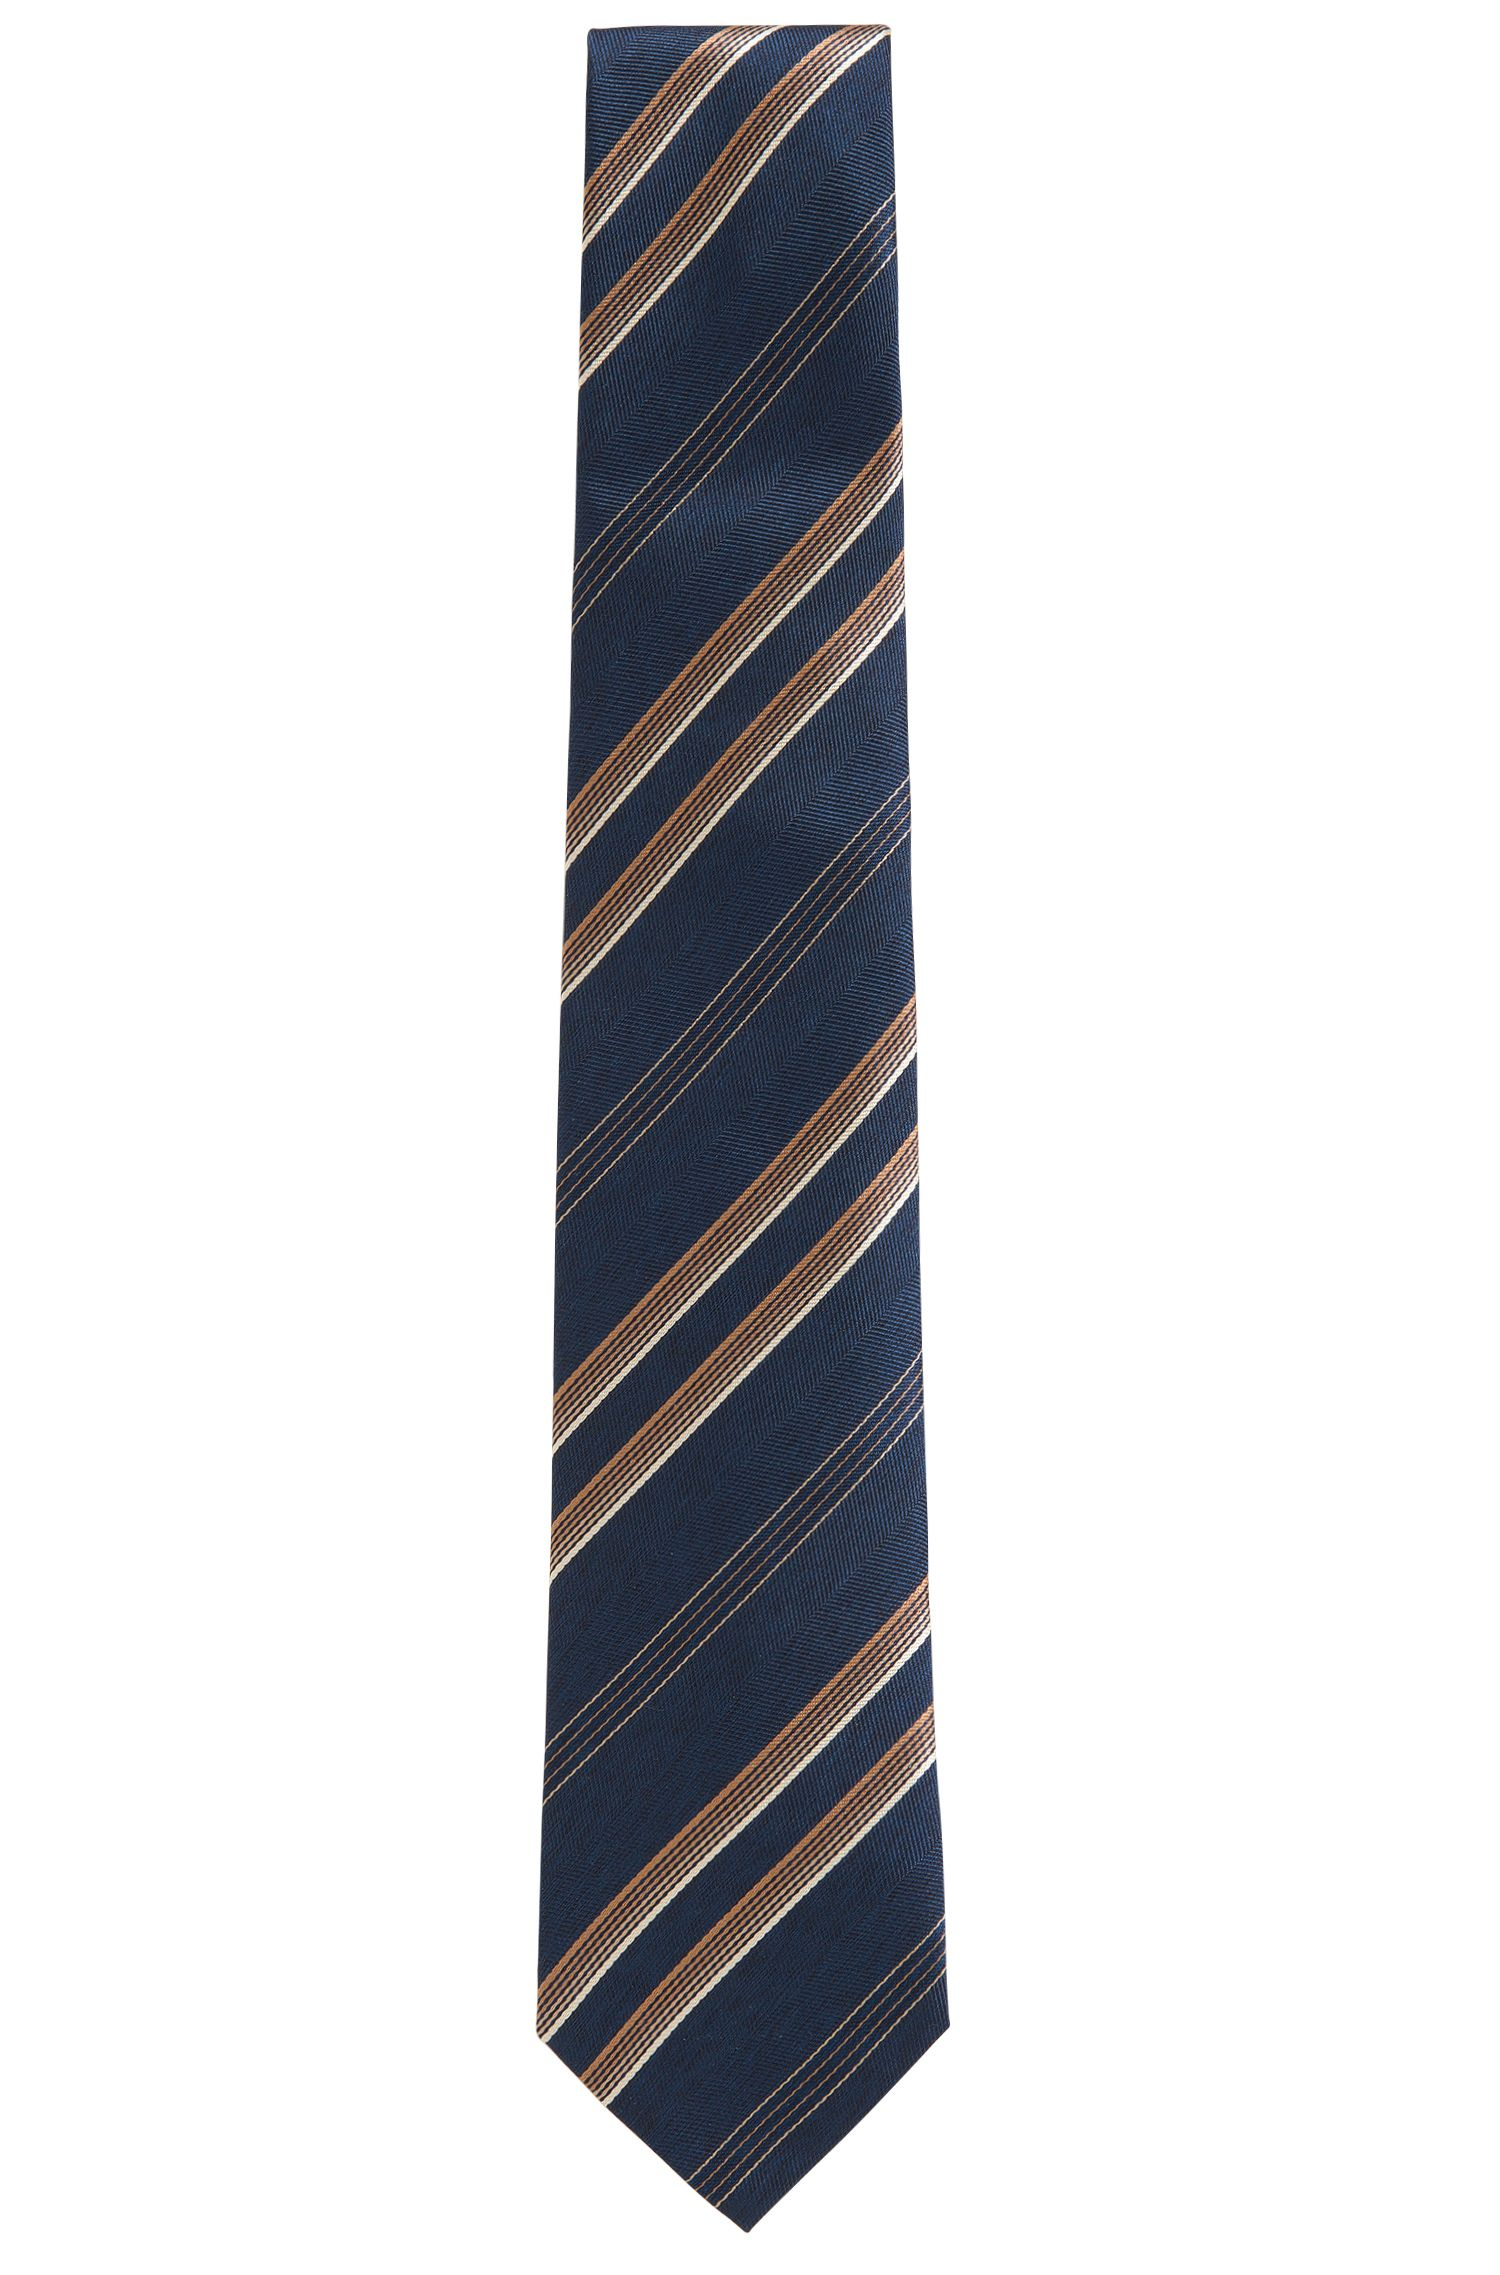 'T-Tie 7.5 cm' | Regular, Striped Herringbone Italian Silk Tie